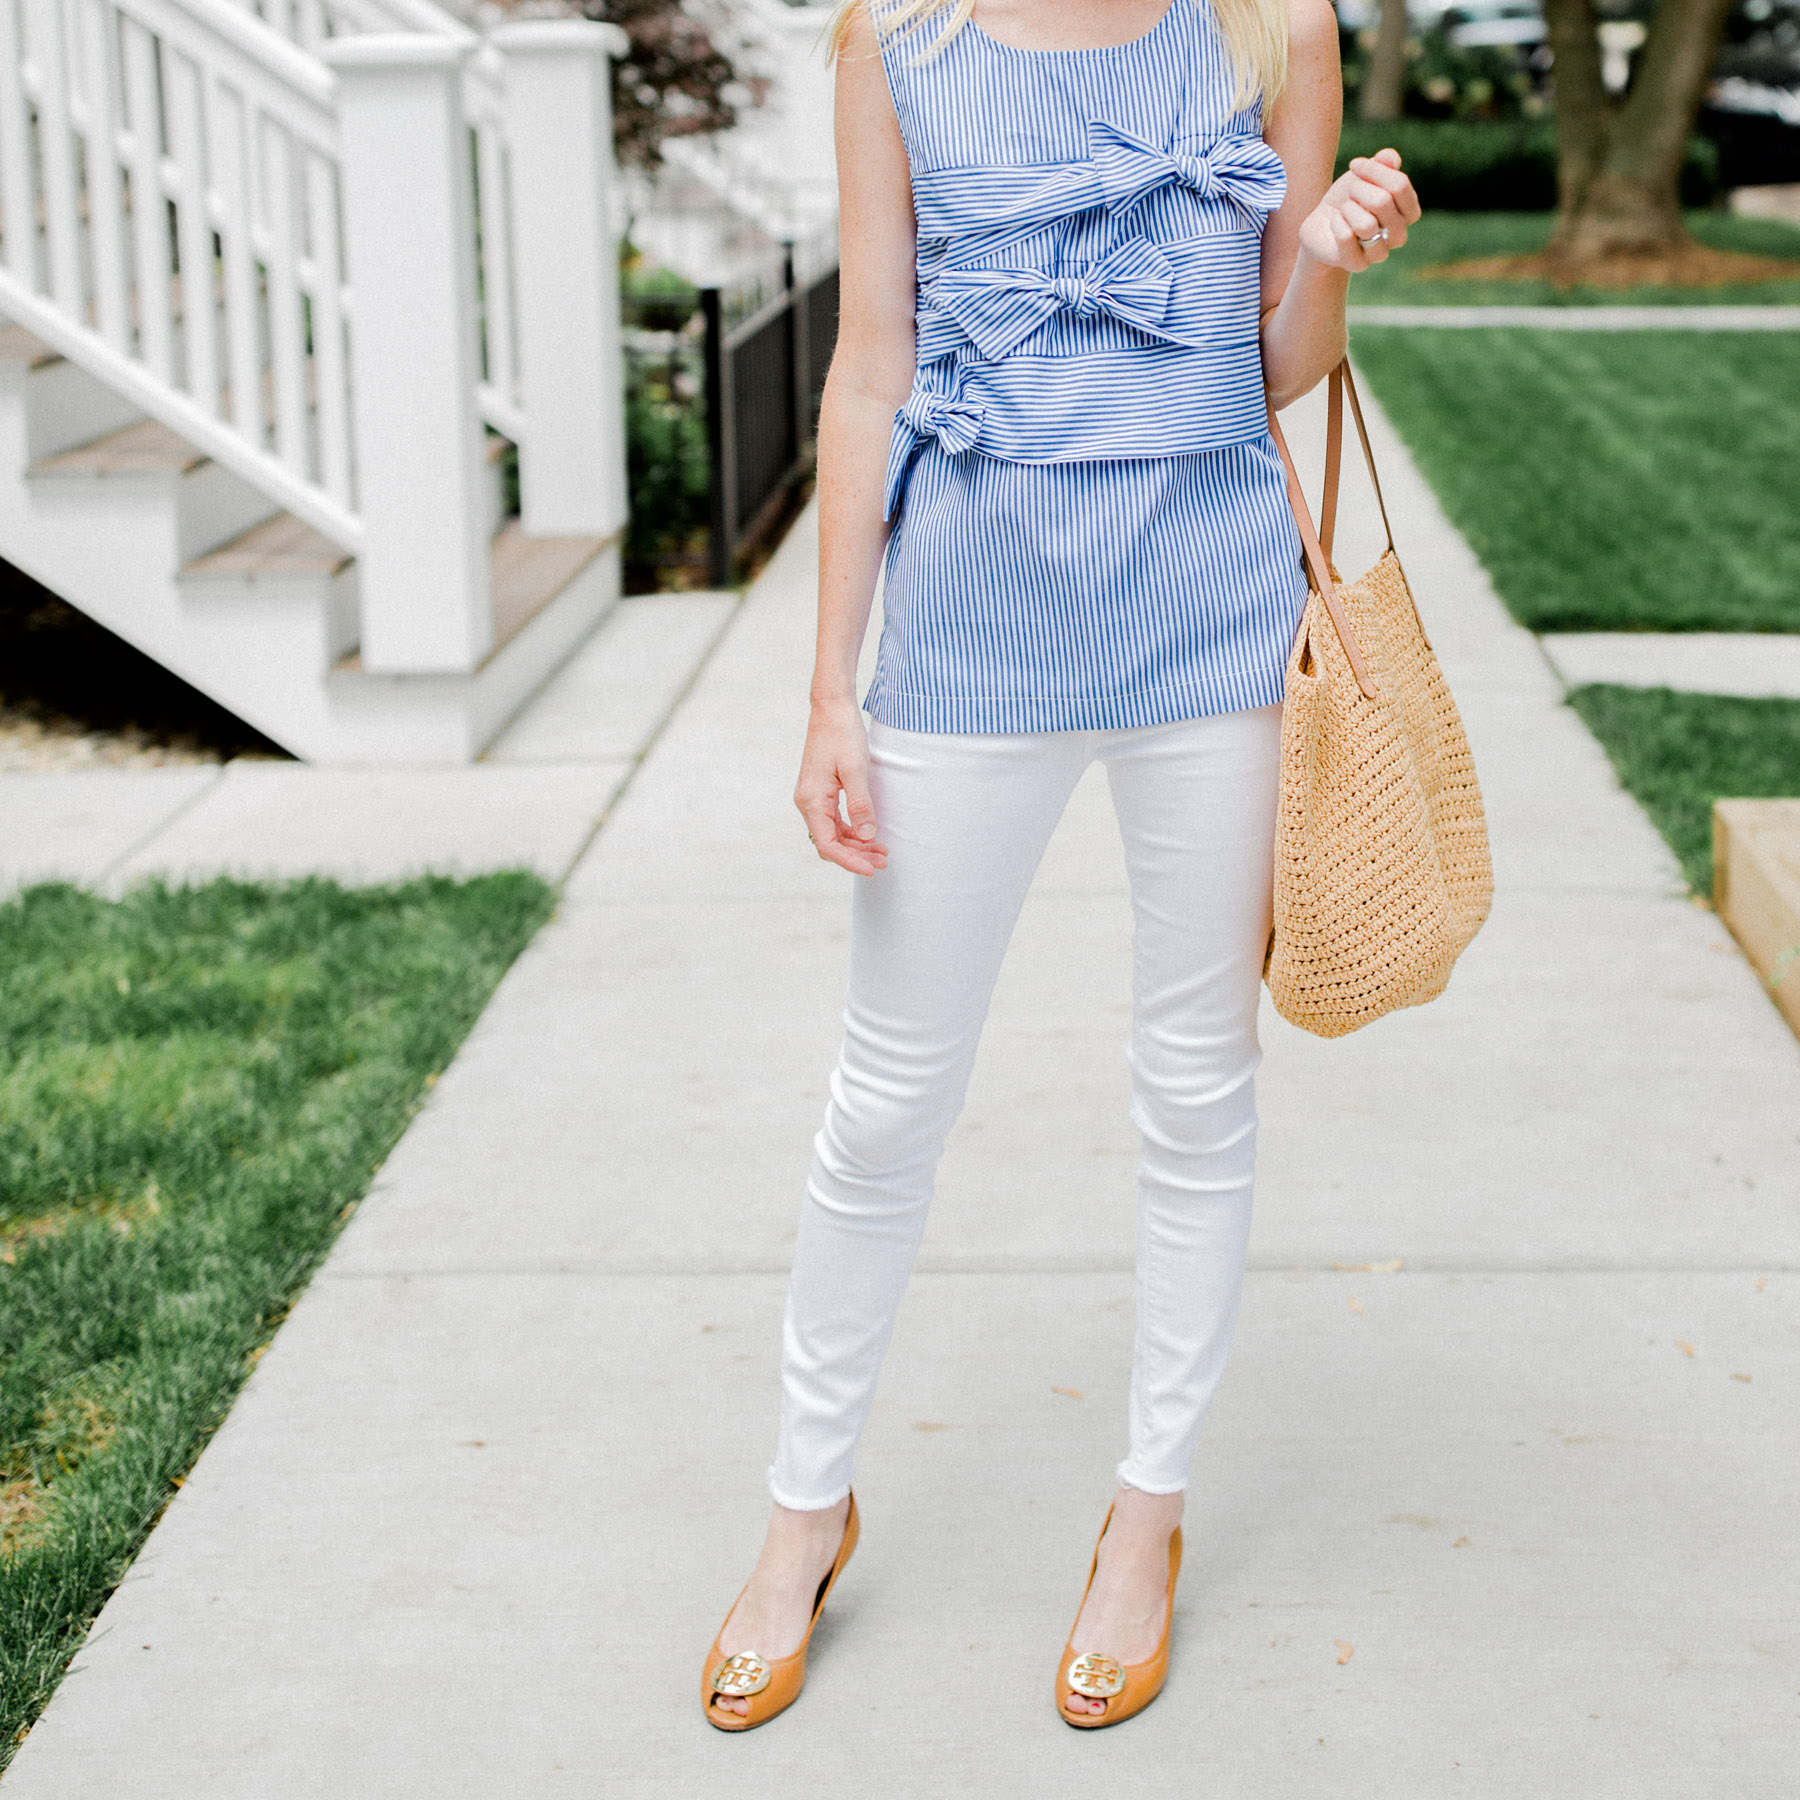 Bow Top / Tory Burch Wedges / Straw Tote /ThirdLove Strapless Bra